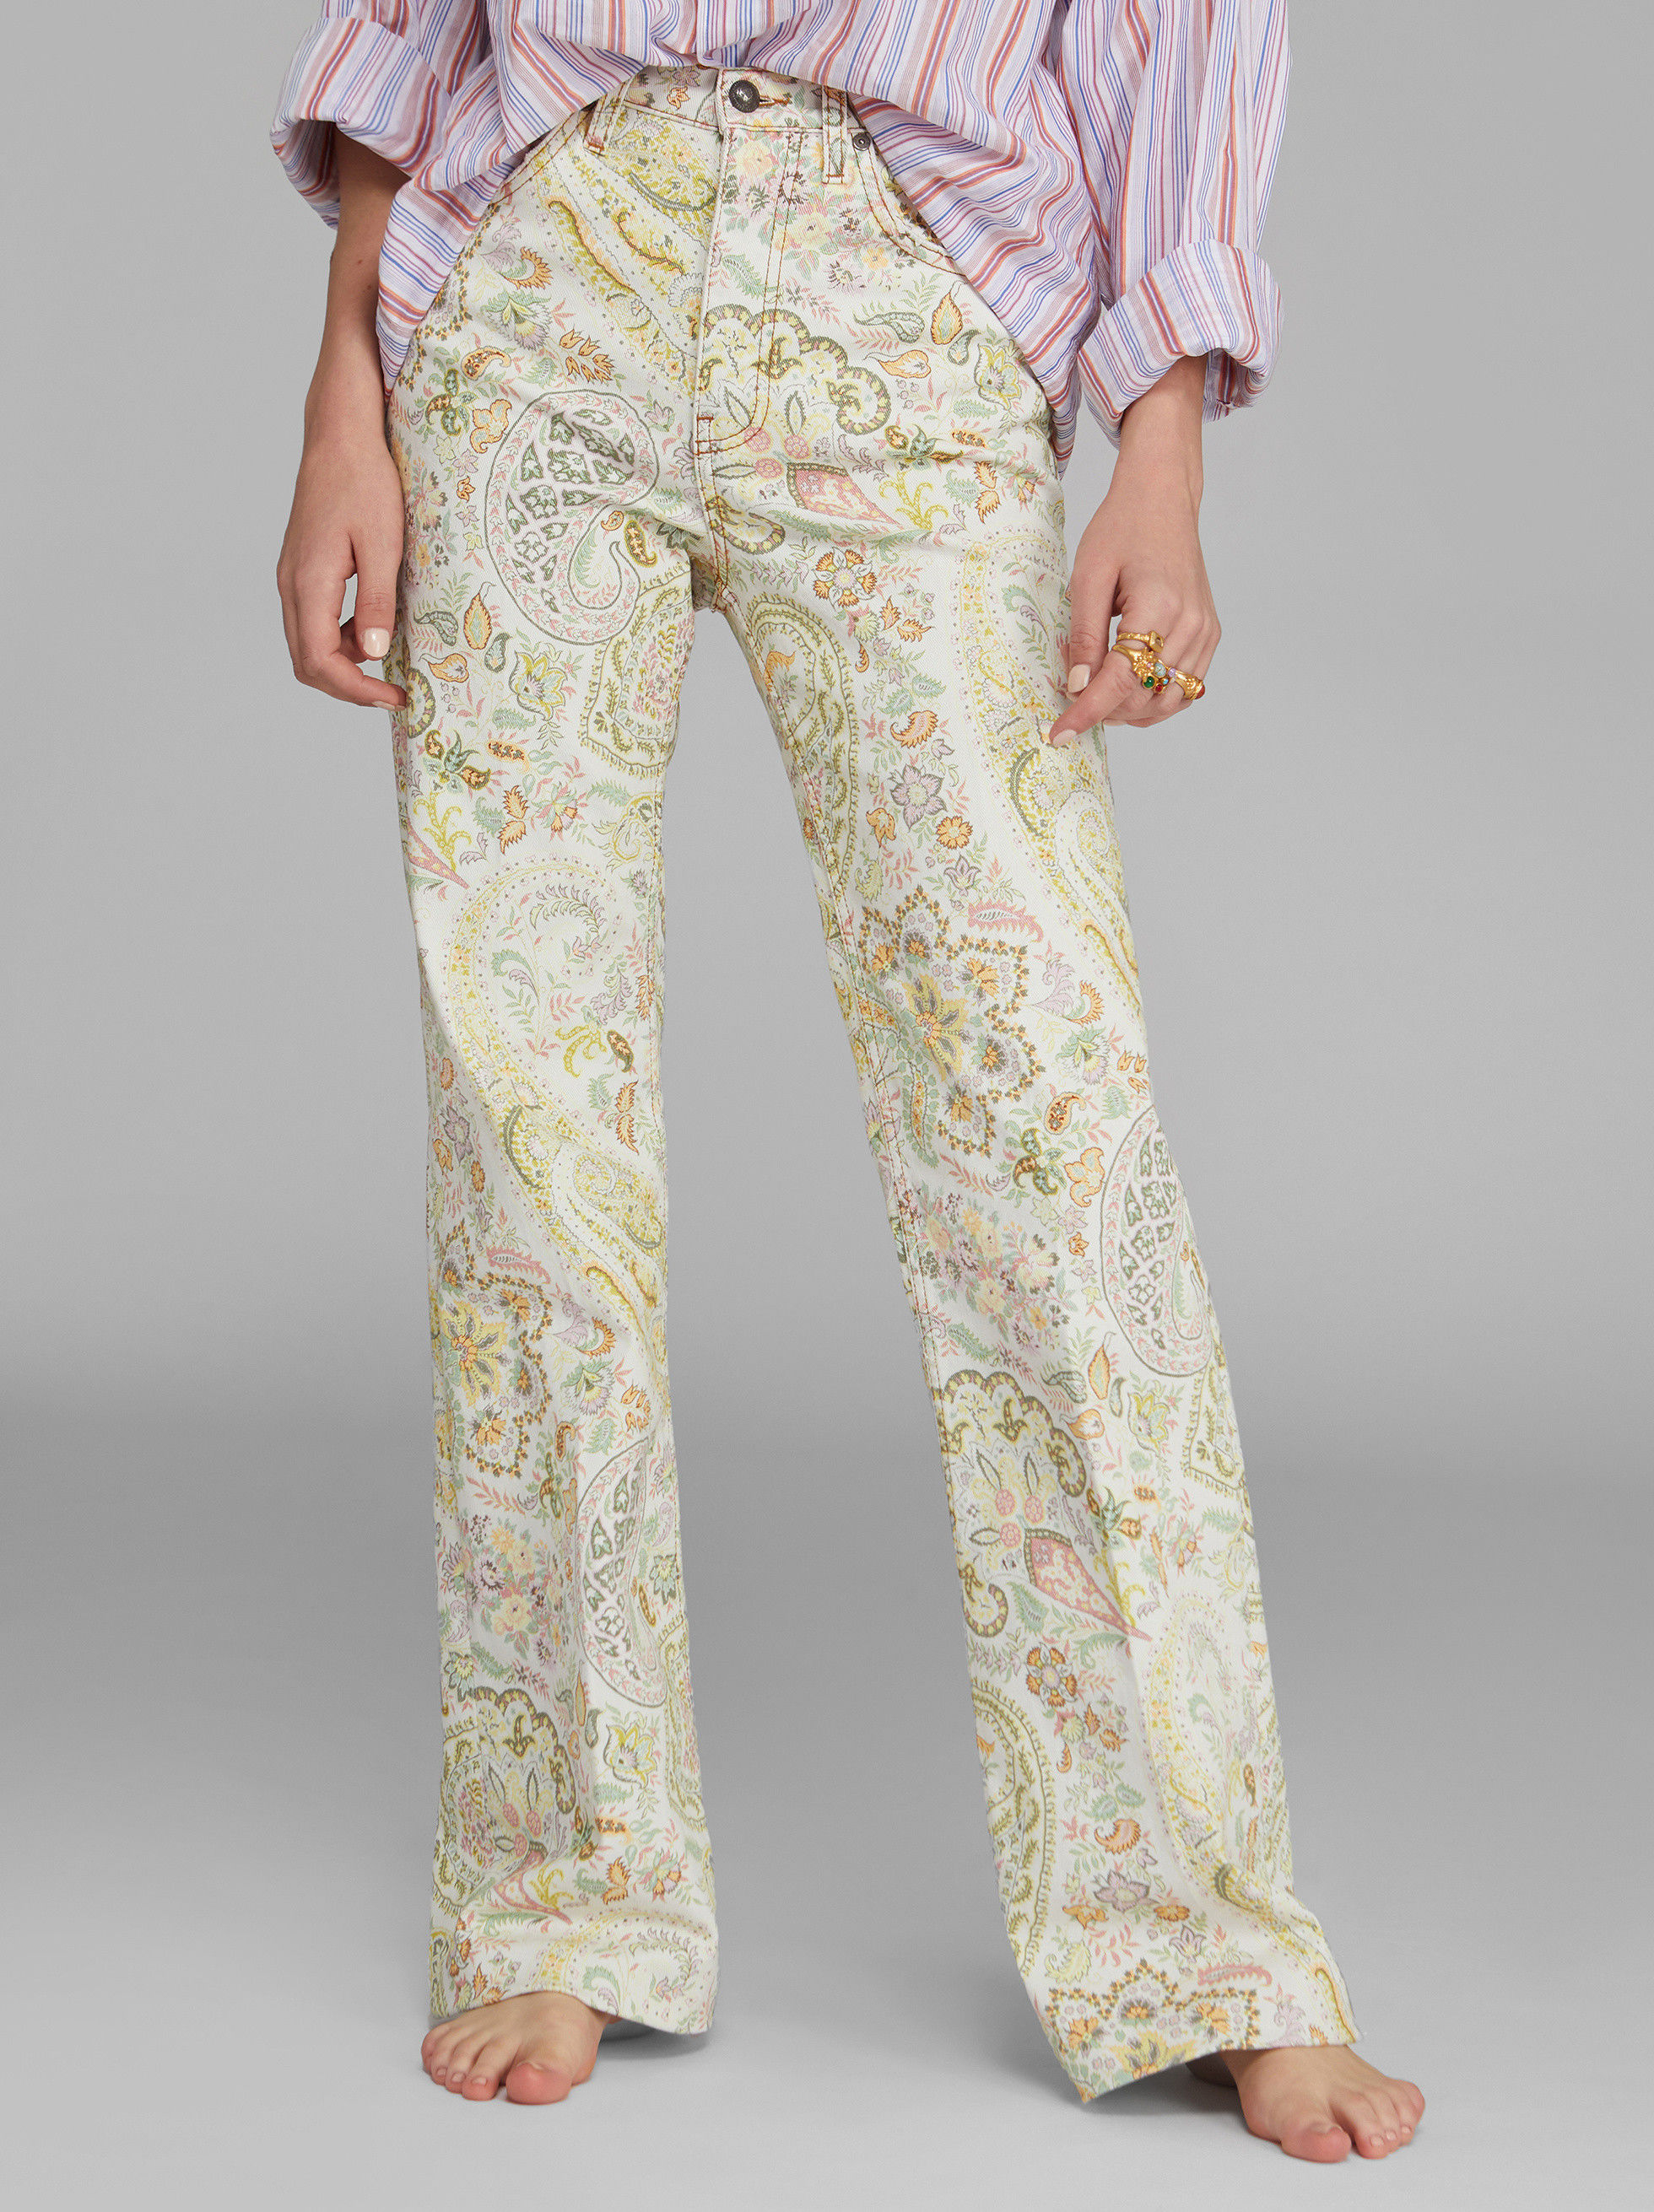 FLARED JEANS WITH FLORAL PAISLEY DESIGNS